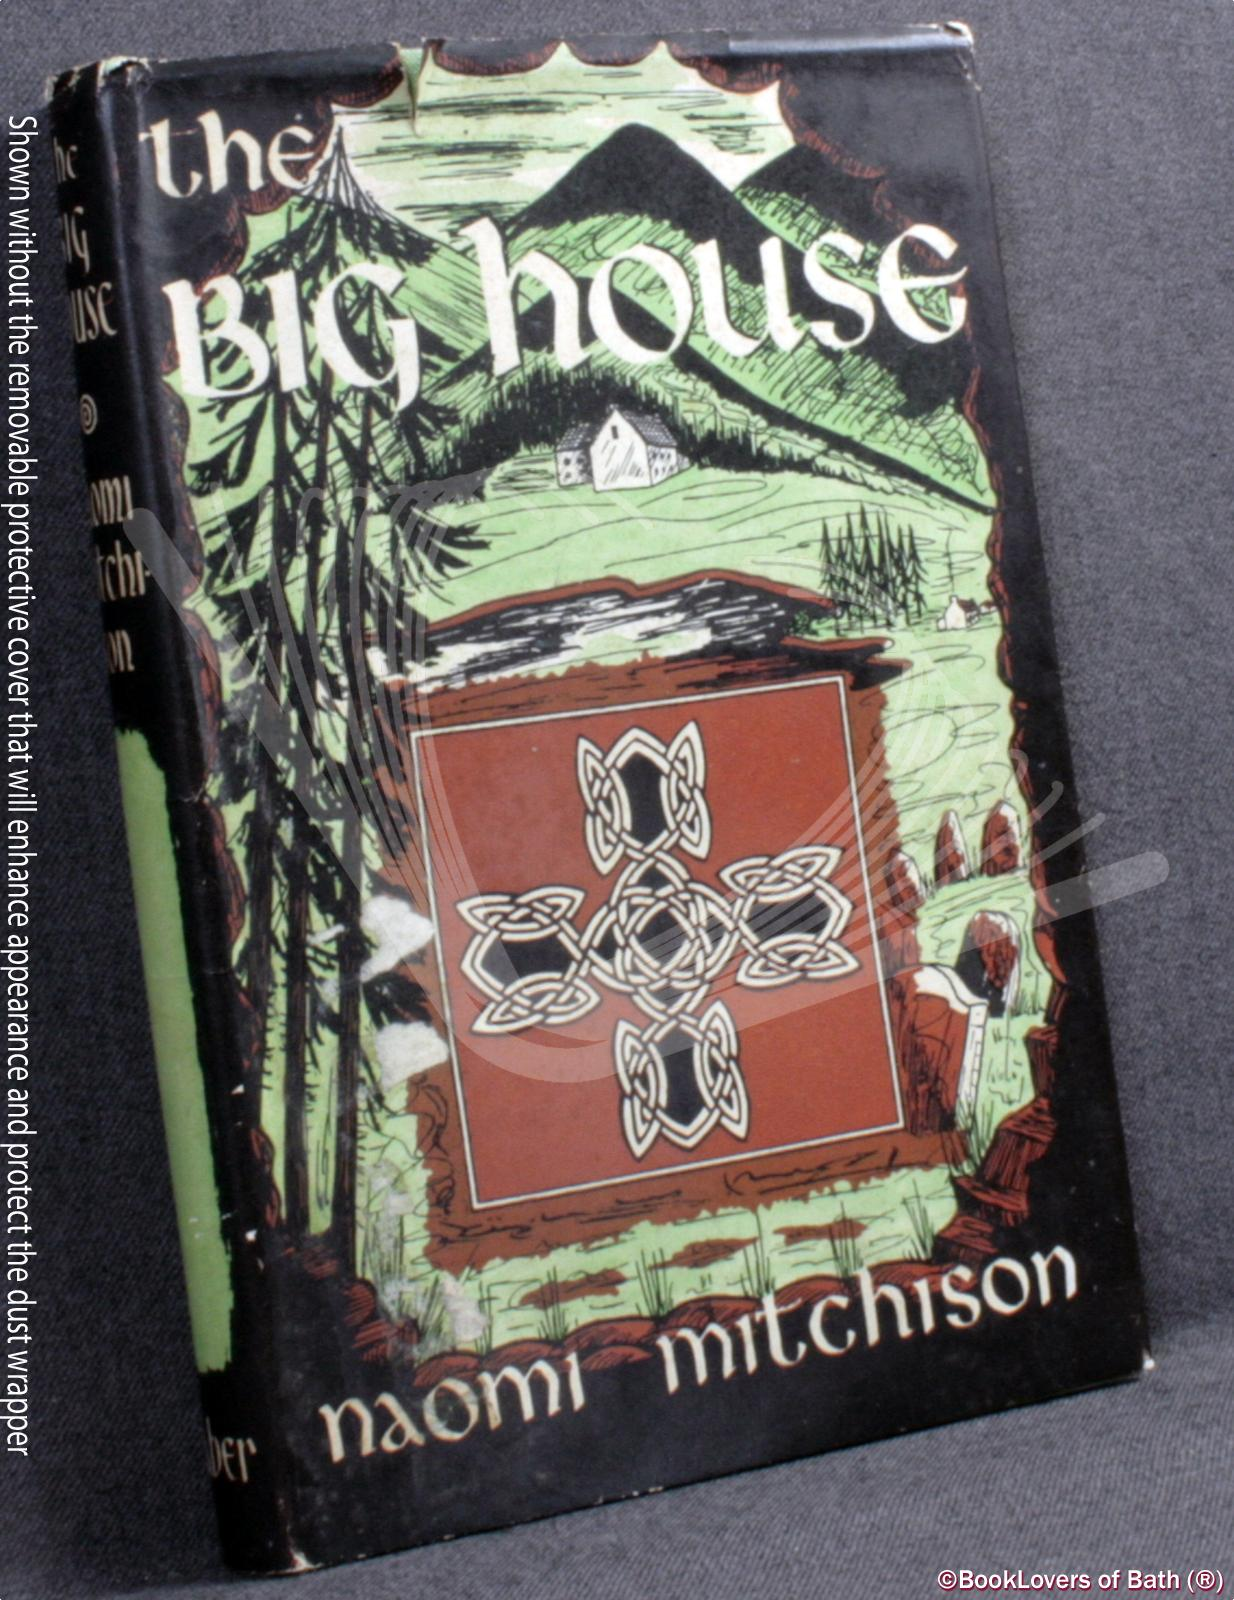 The Big House - Mitchison